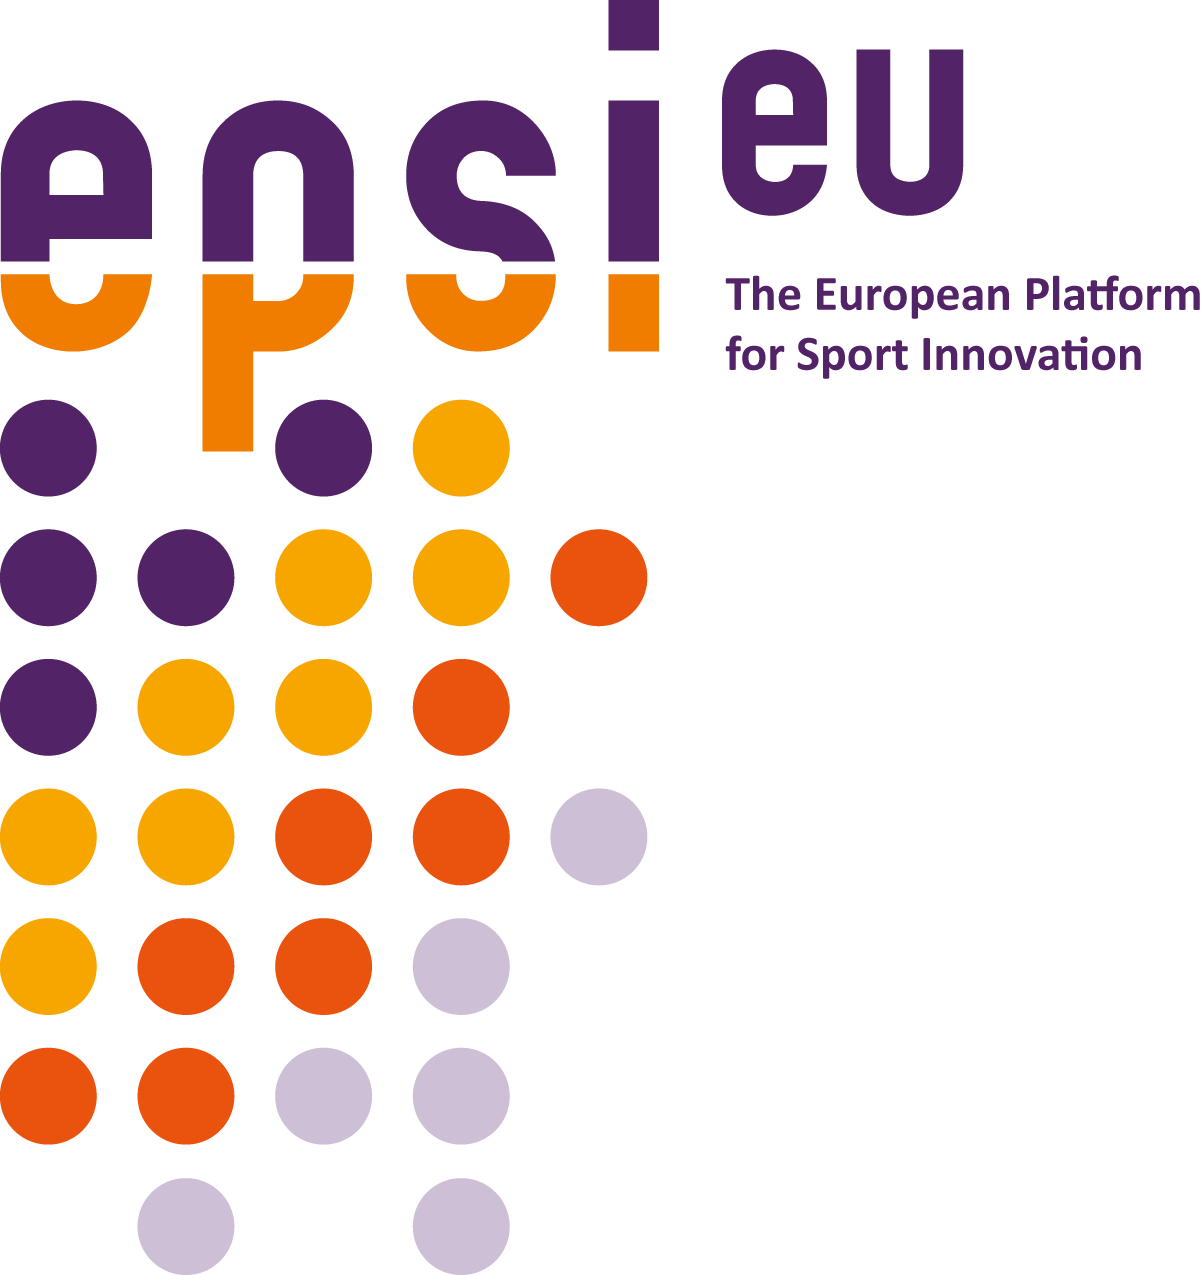 The European Platform for Sport Innovation (EPSI)